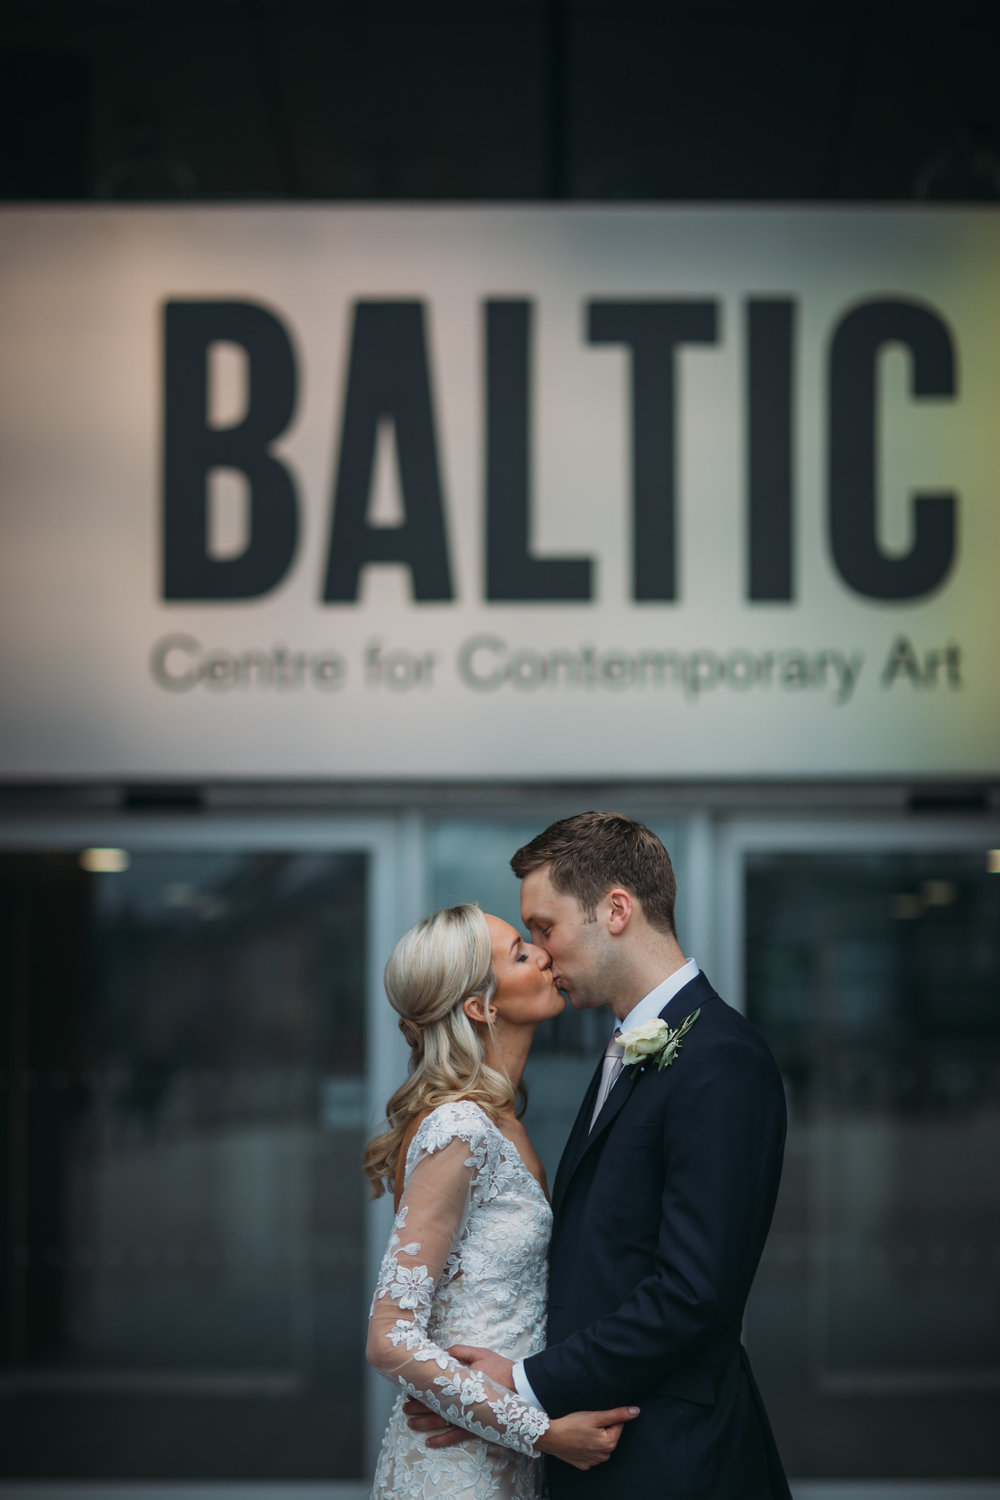 Rebecca-Paul-The-Baltic-Wedding-Jo-Donaldson-Photography-733.jpg